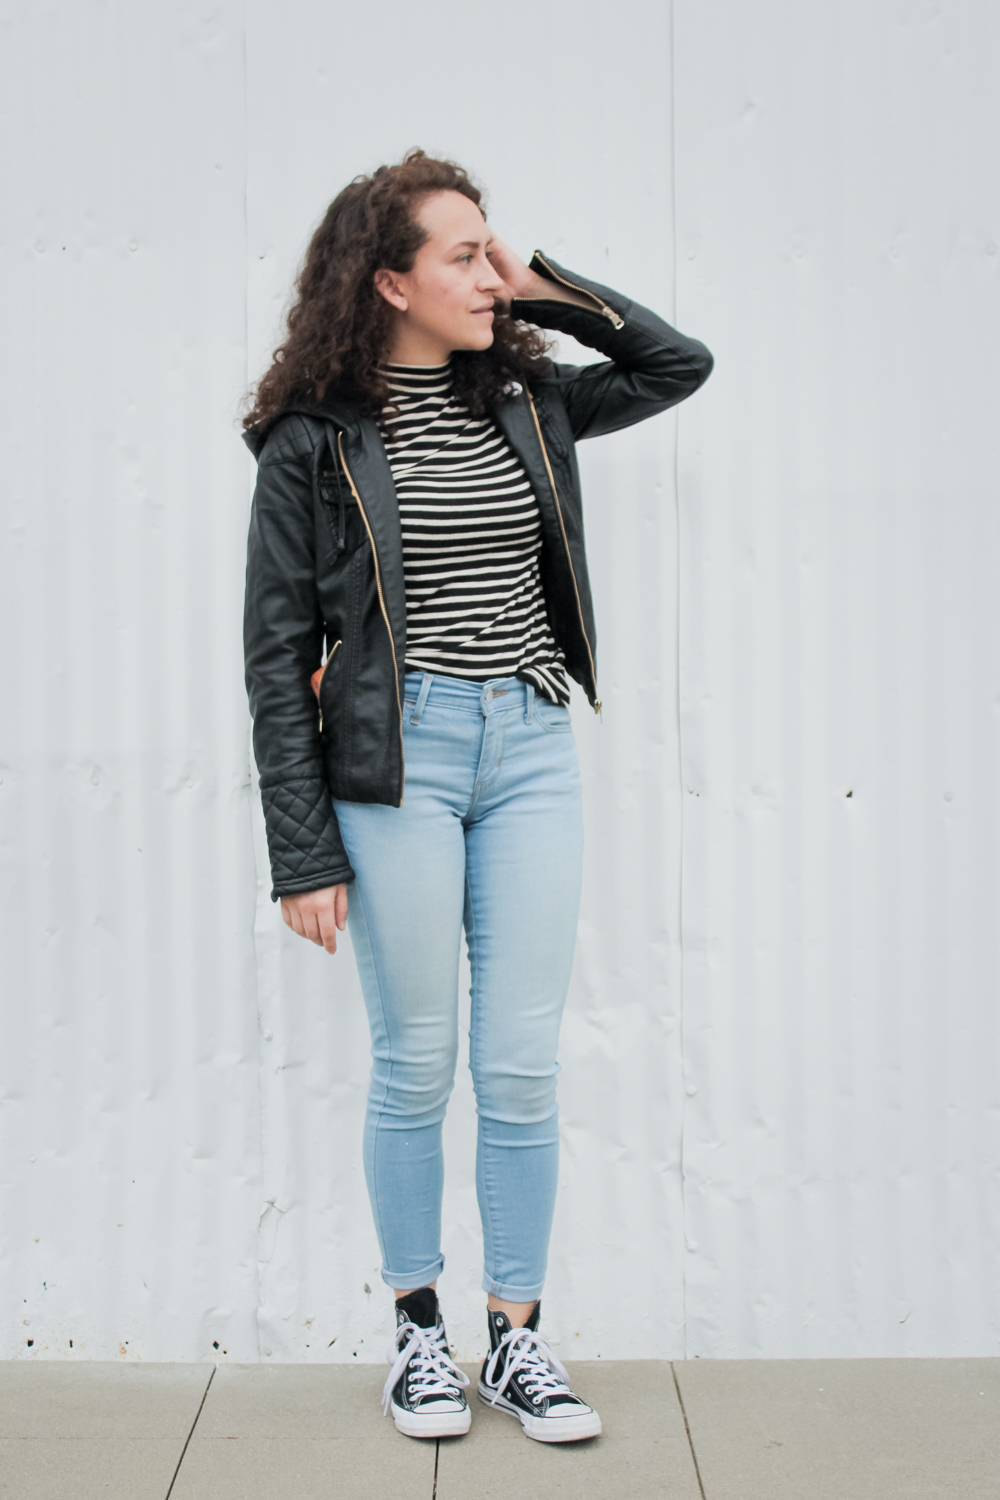 striped mockneck top with levis skinny jeans, high top converse sneakers and a leather jacket for day 6 of the spring 10x10 challenge/unfancy remix | tintedgreen